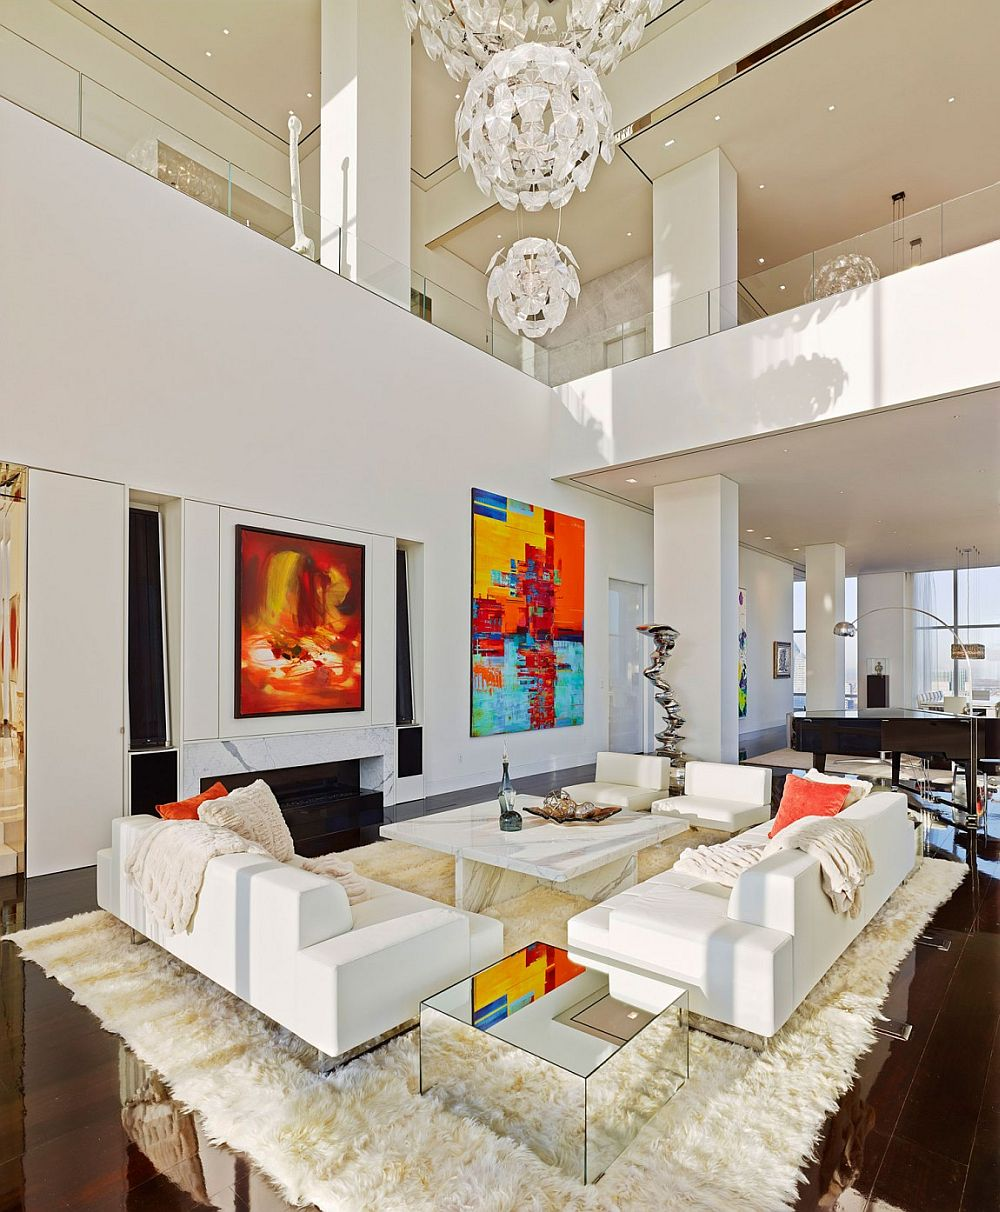 Breathtaking New York City Penthouse Leaves You Awestruck!